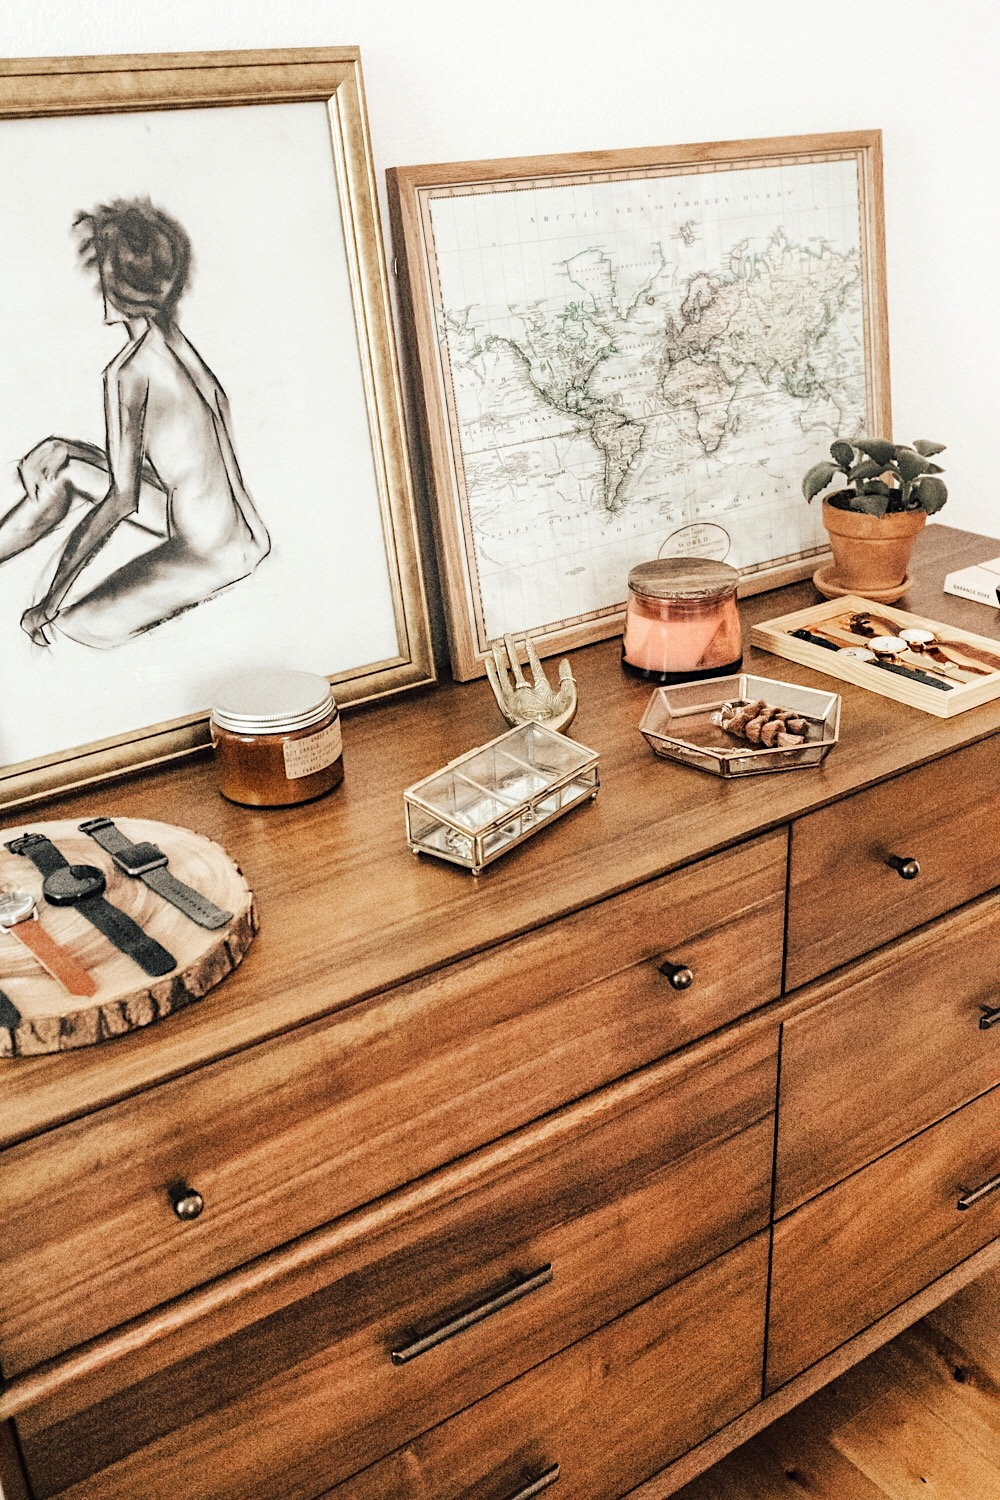 Bedroom Dresser Top Decor   LivvyLand   Austin Fashion and Style Blogger Bedroom Dresser Top Decor